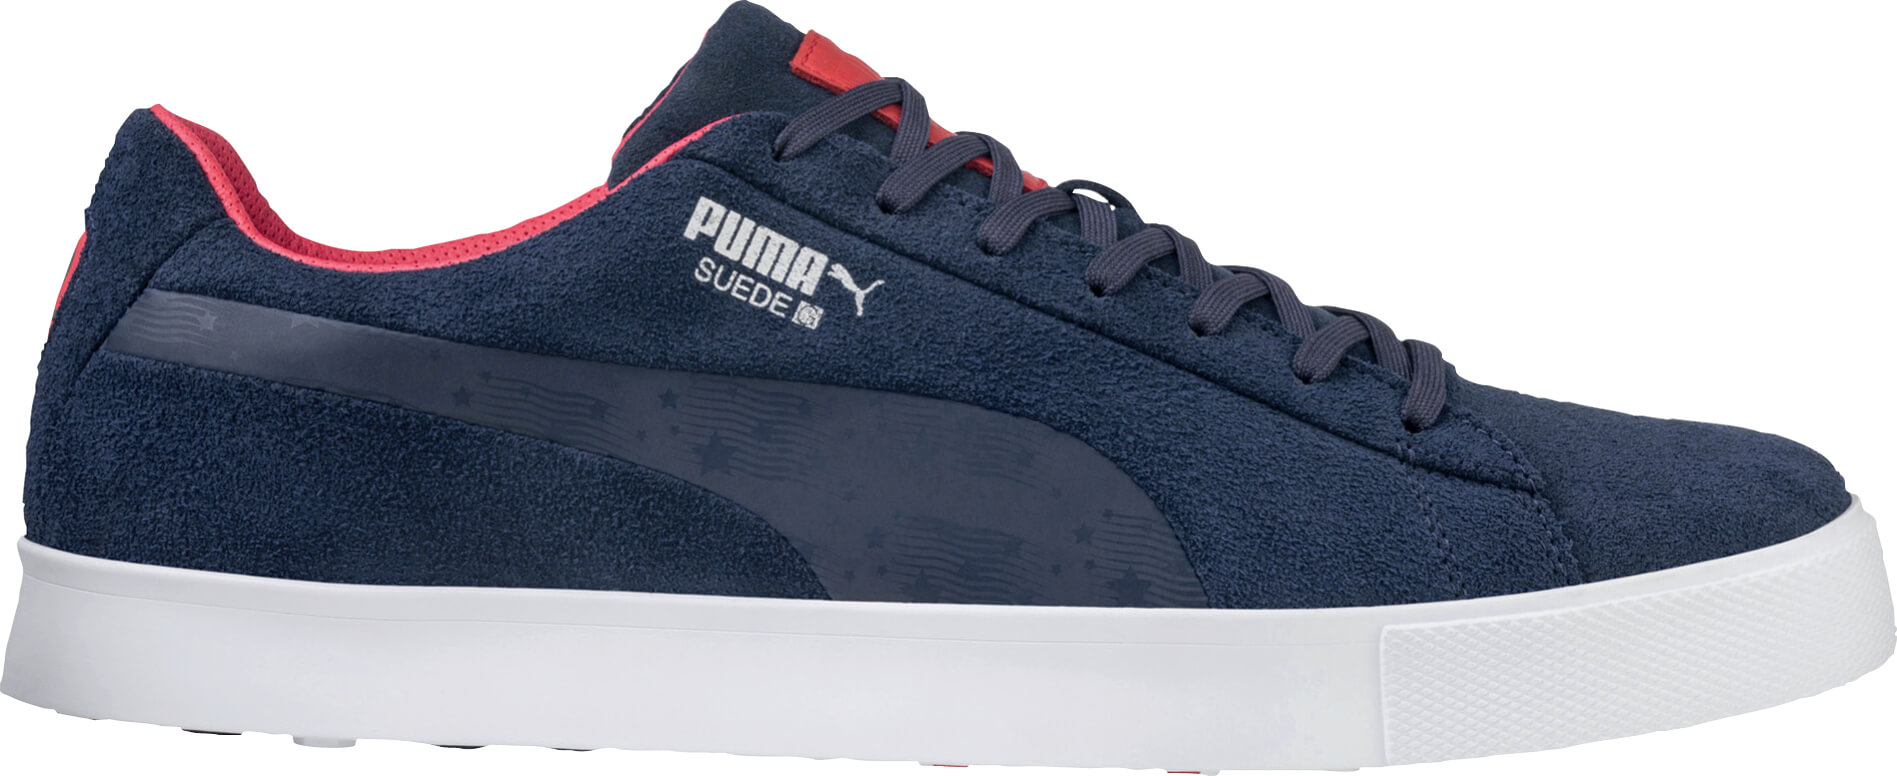 3cd70012fe19 Details about Puma Suede G Golf Shoes 191208-01 Peacoat Navy Team USA Men s  New - Choose Size!